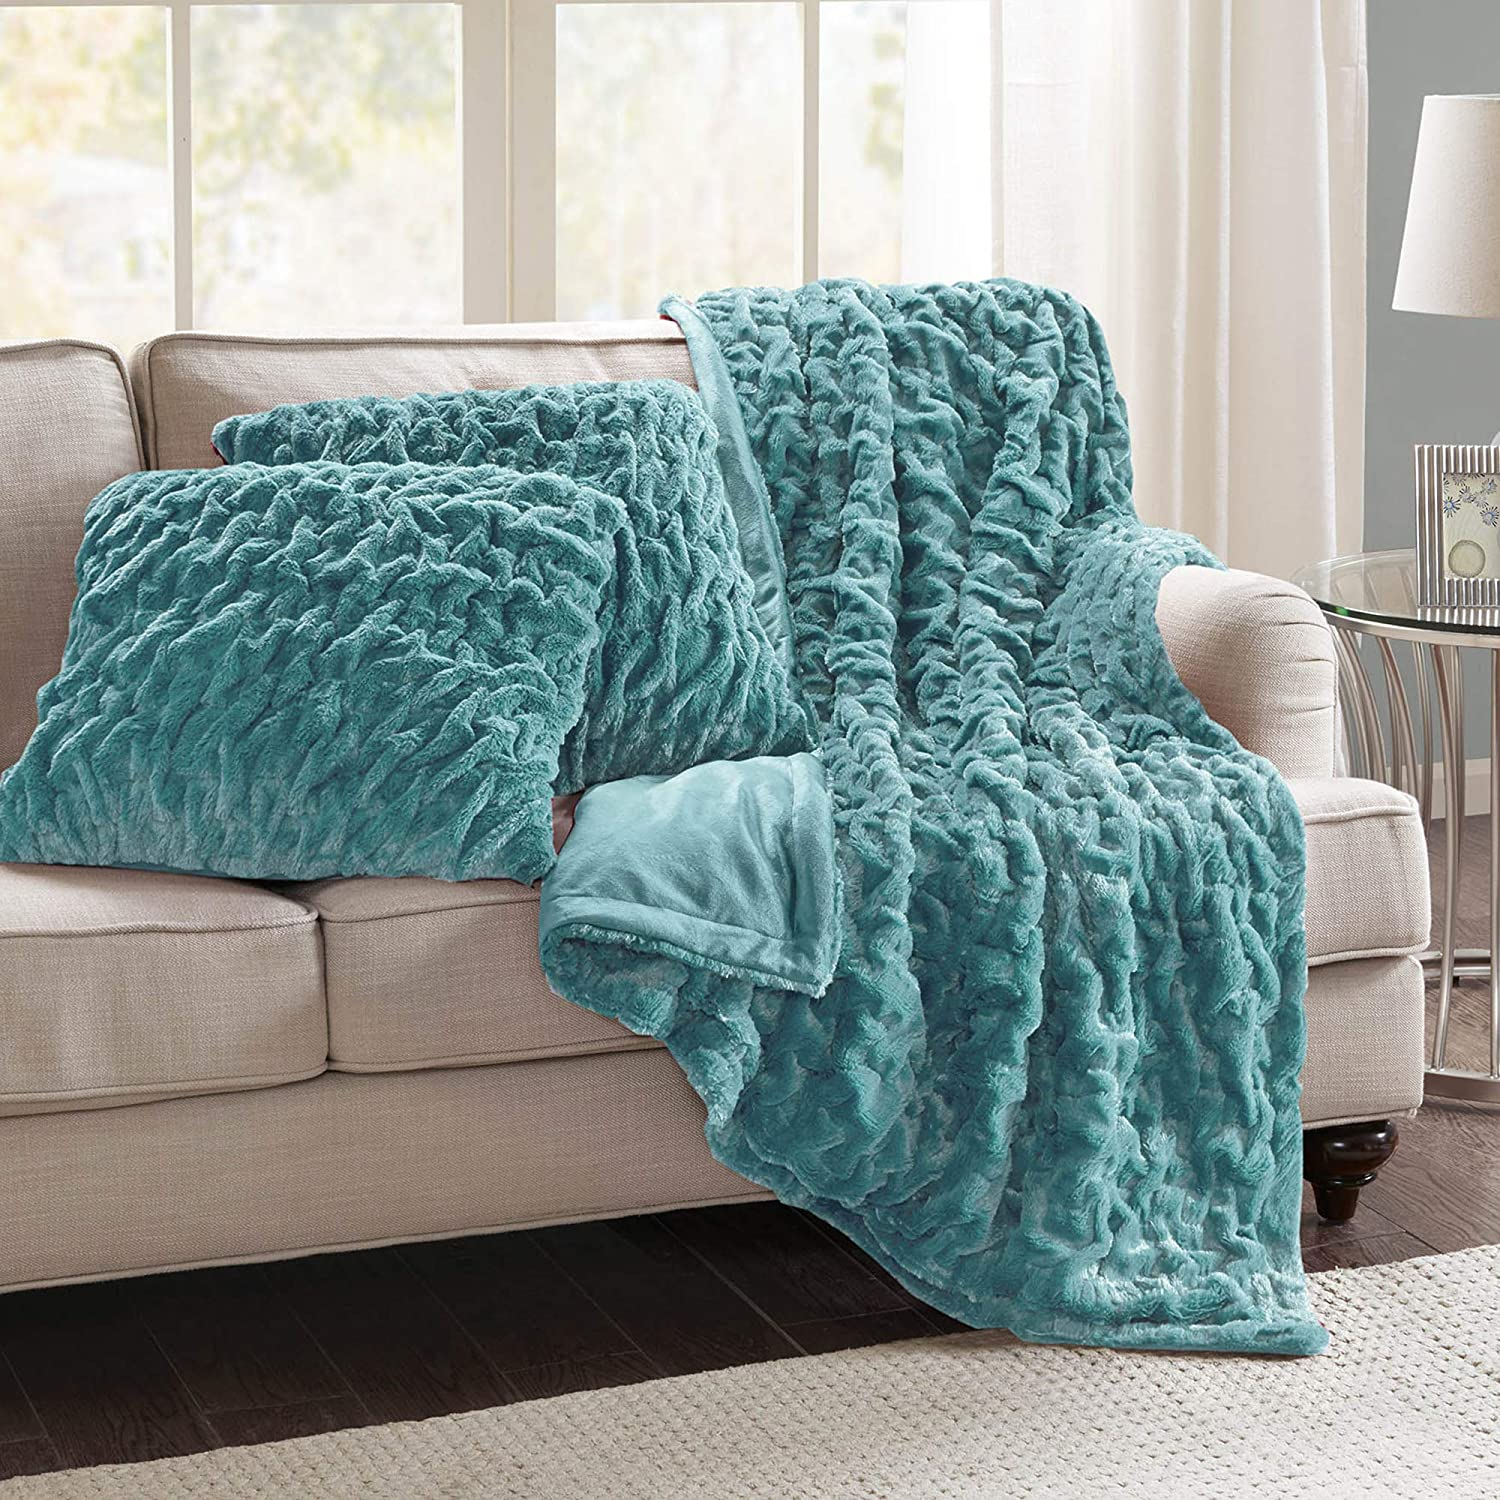 Comfort Spaces Ruched Faux Fur Plush Piece 3 U Blanket High order Throw Max 82% OFF Set